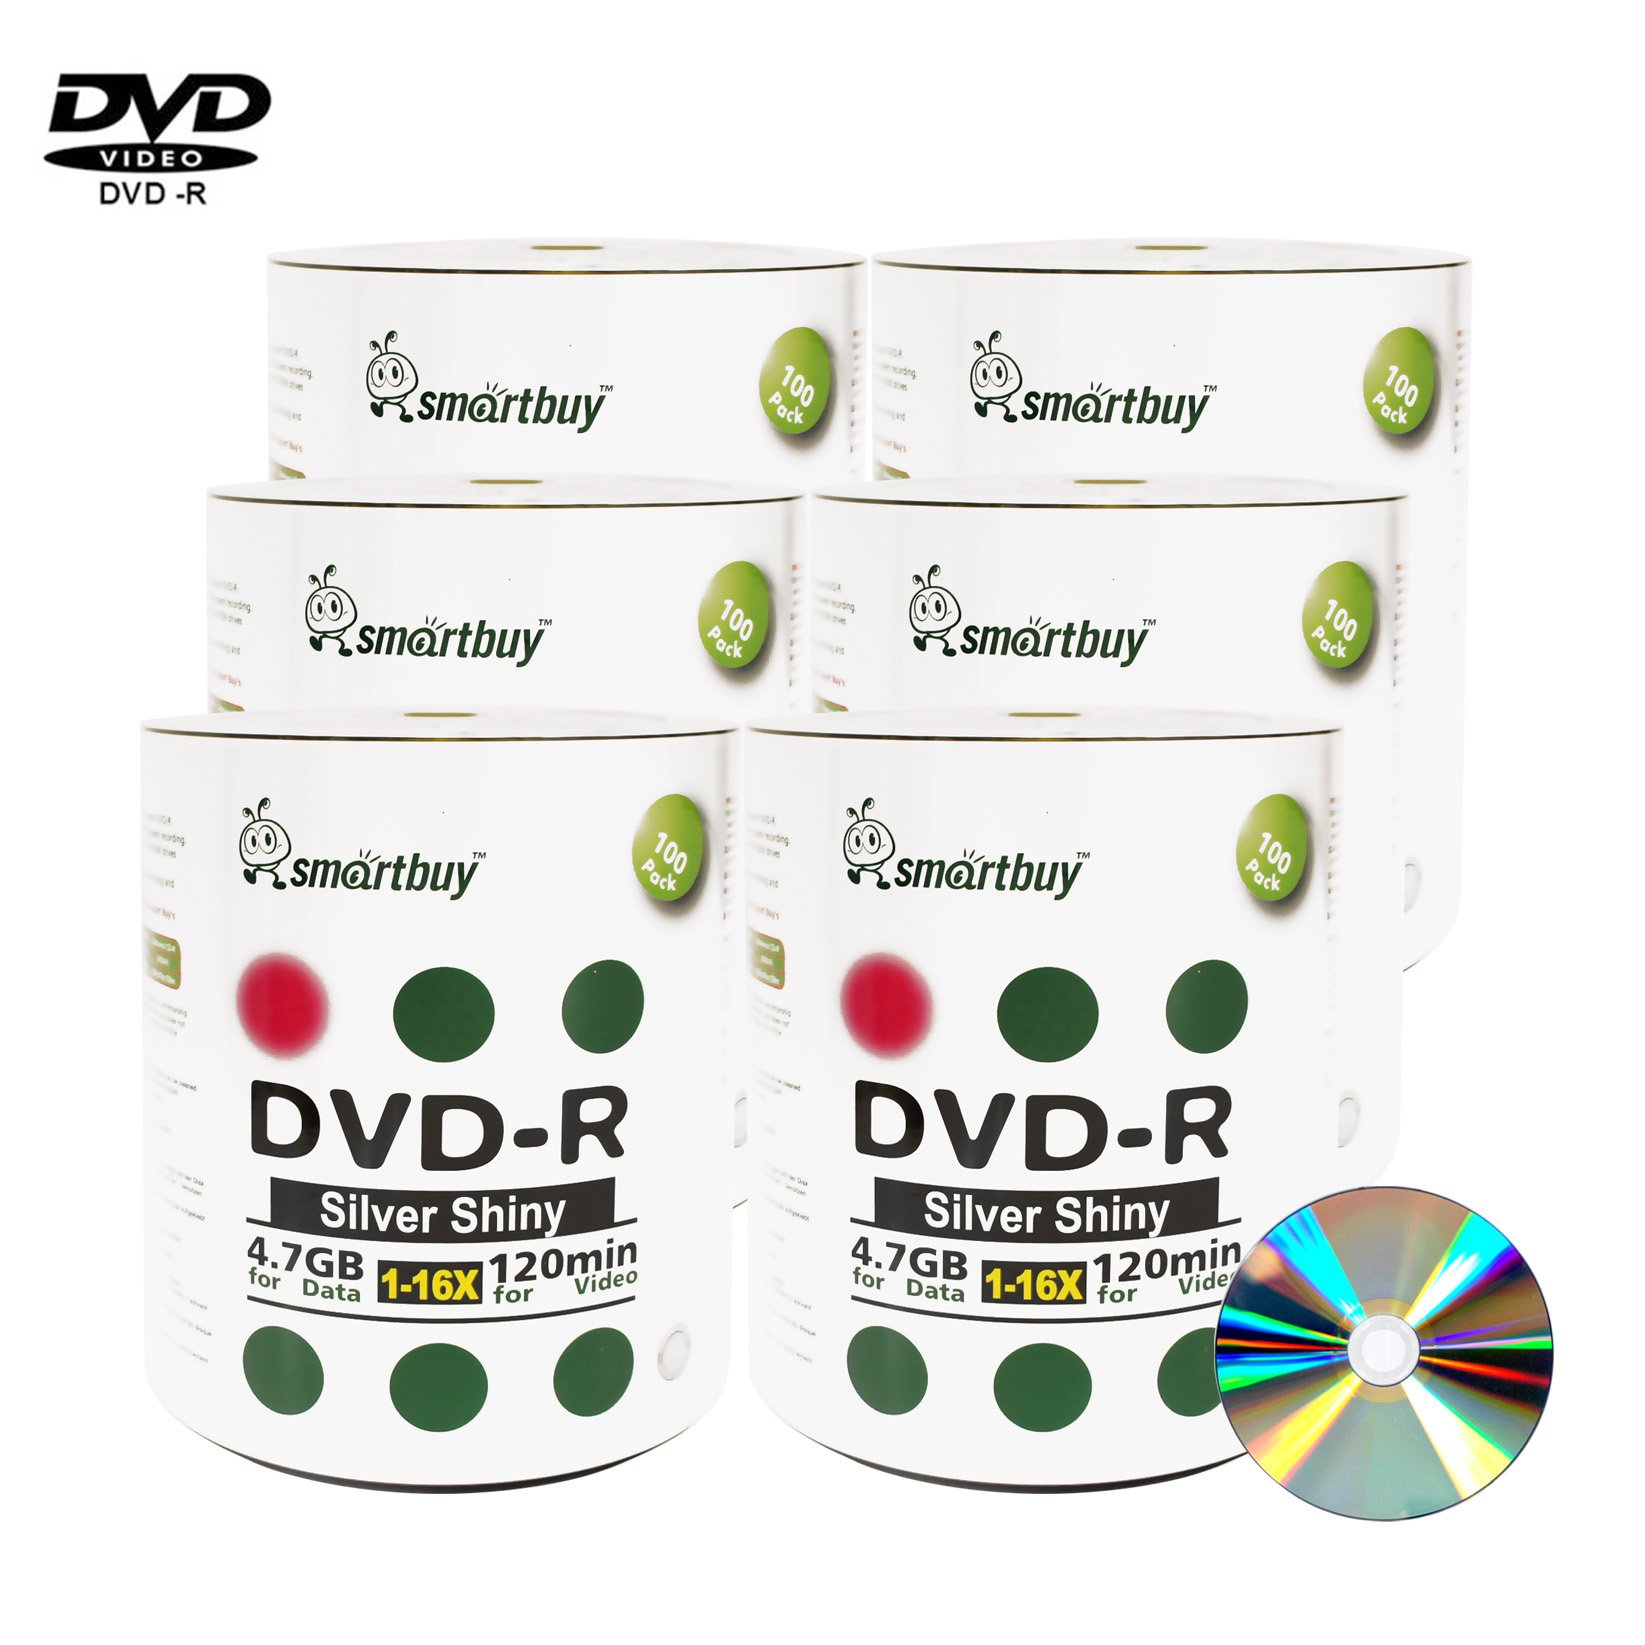 Smartbuy 4.7gb/120min 16x DVD-R Shiny Silver Blank Data Video Recordable Media Disc (600-Disc)